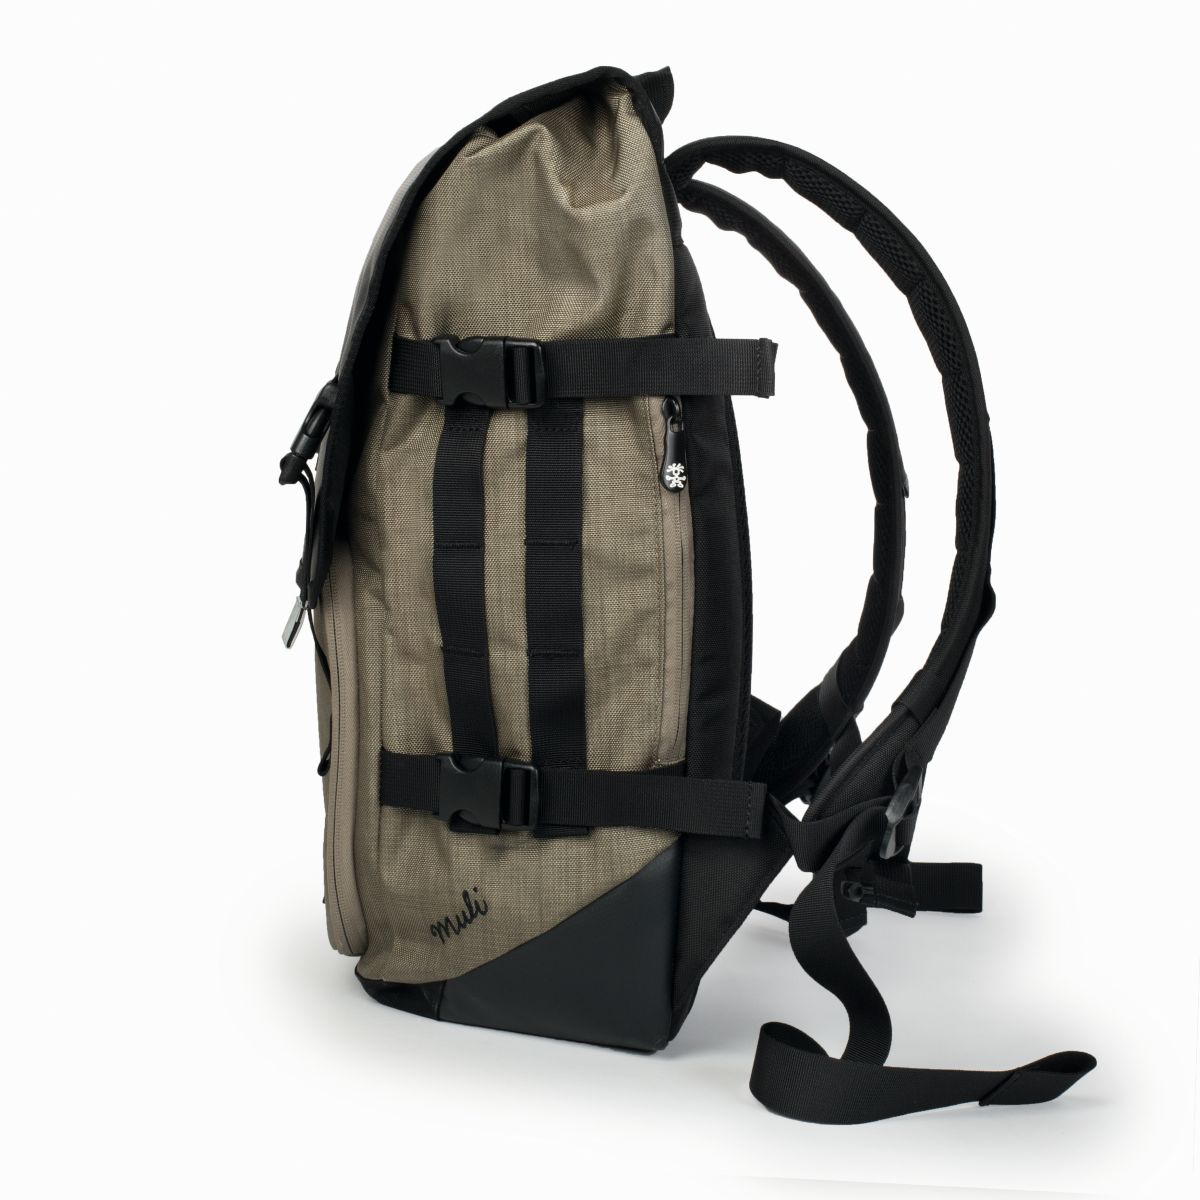 CRUMPLER-MULI-PHOTO-Backpack - Fotocredit: Crumpler